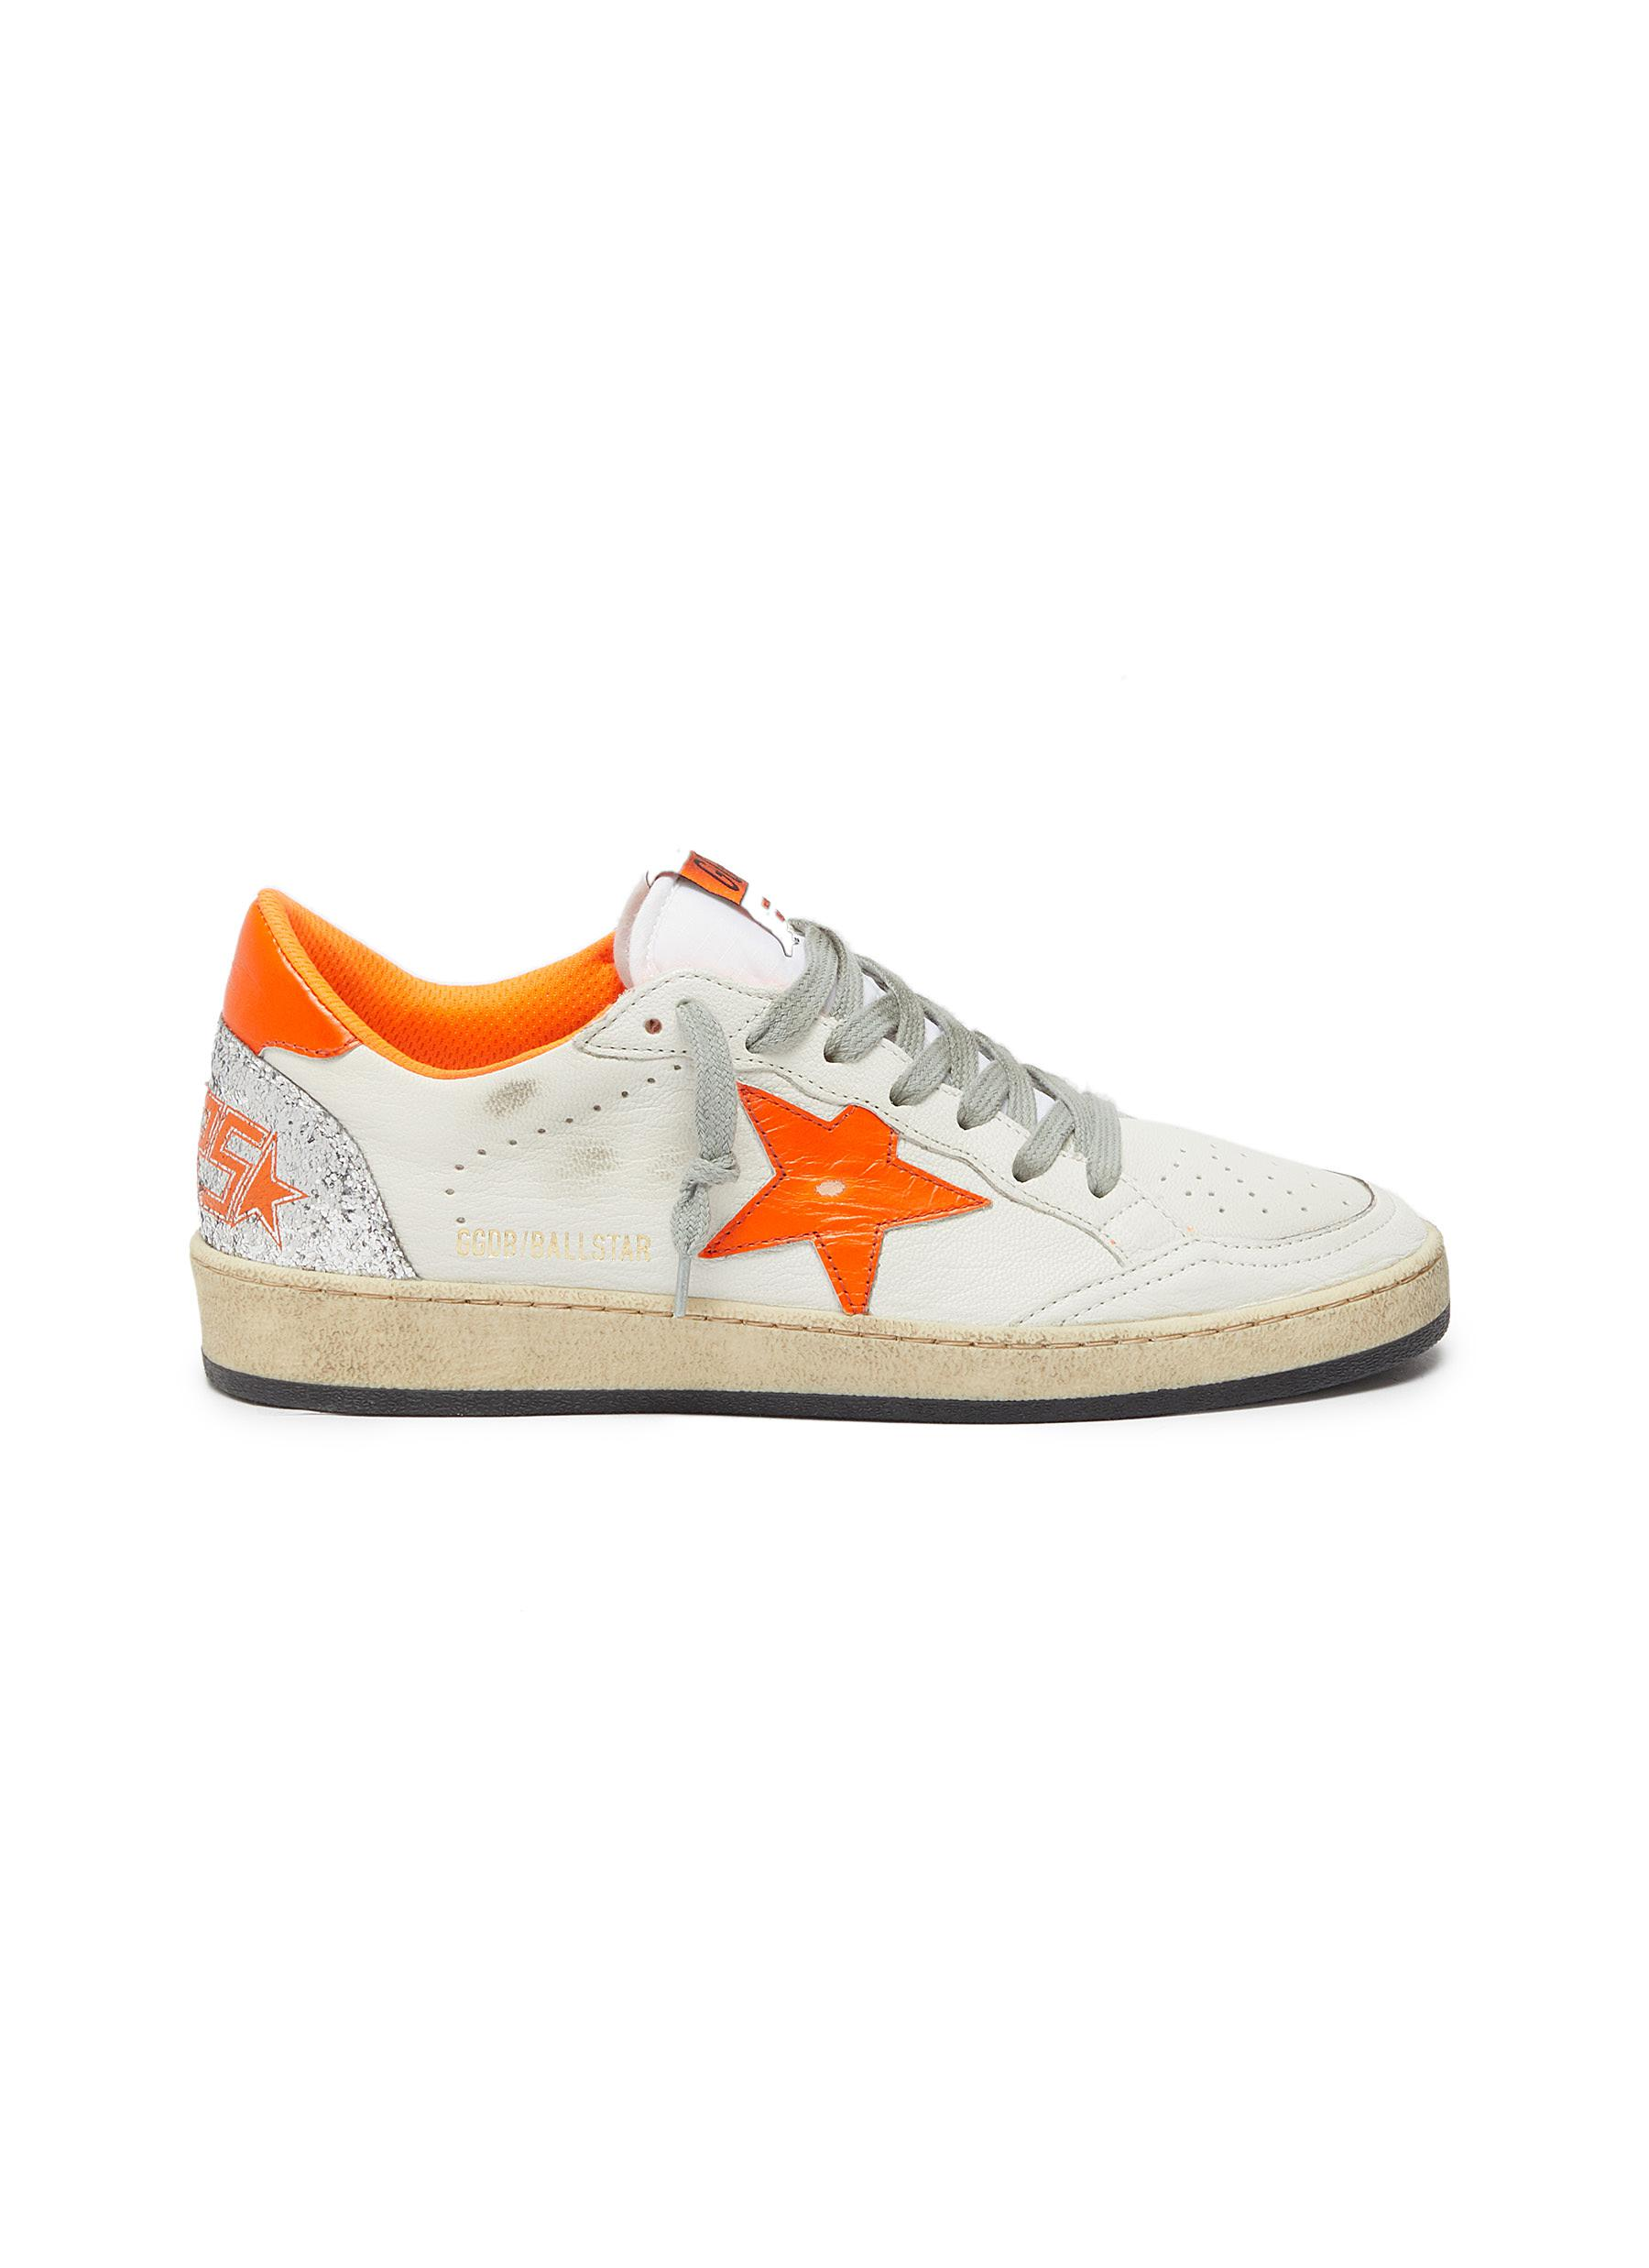 Ball Star glitter counter leather sneakers by Golden Goose